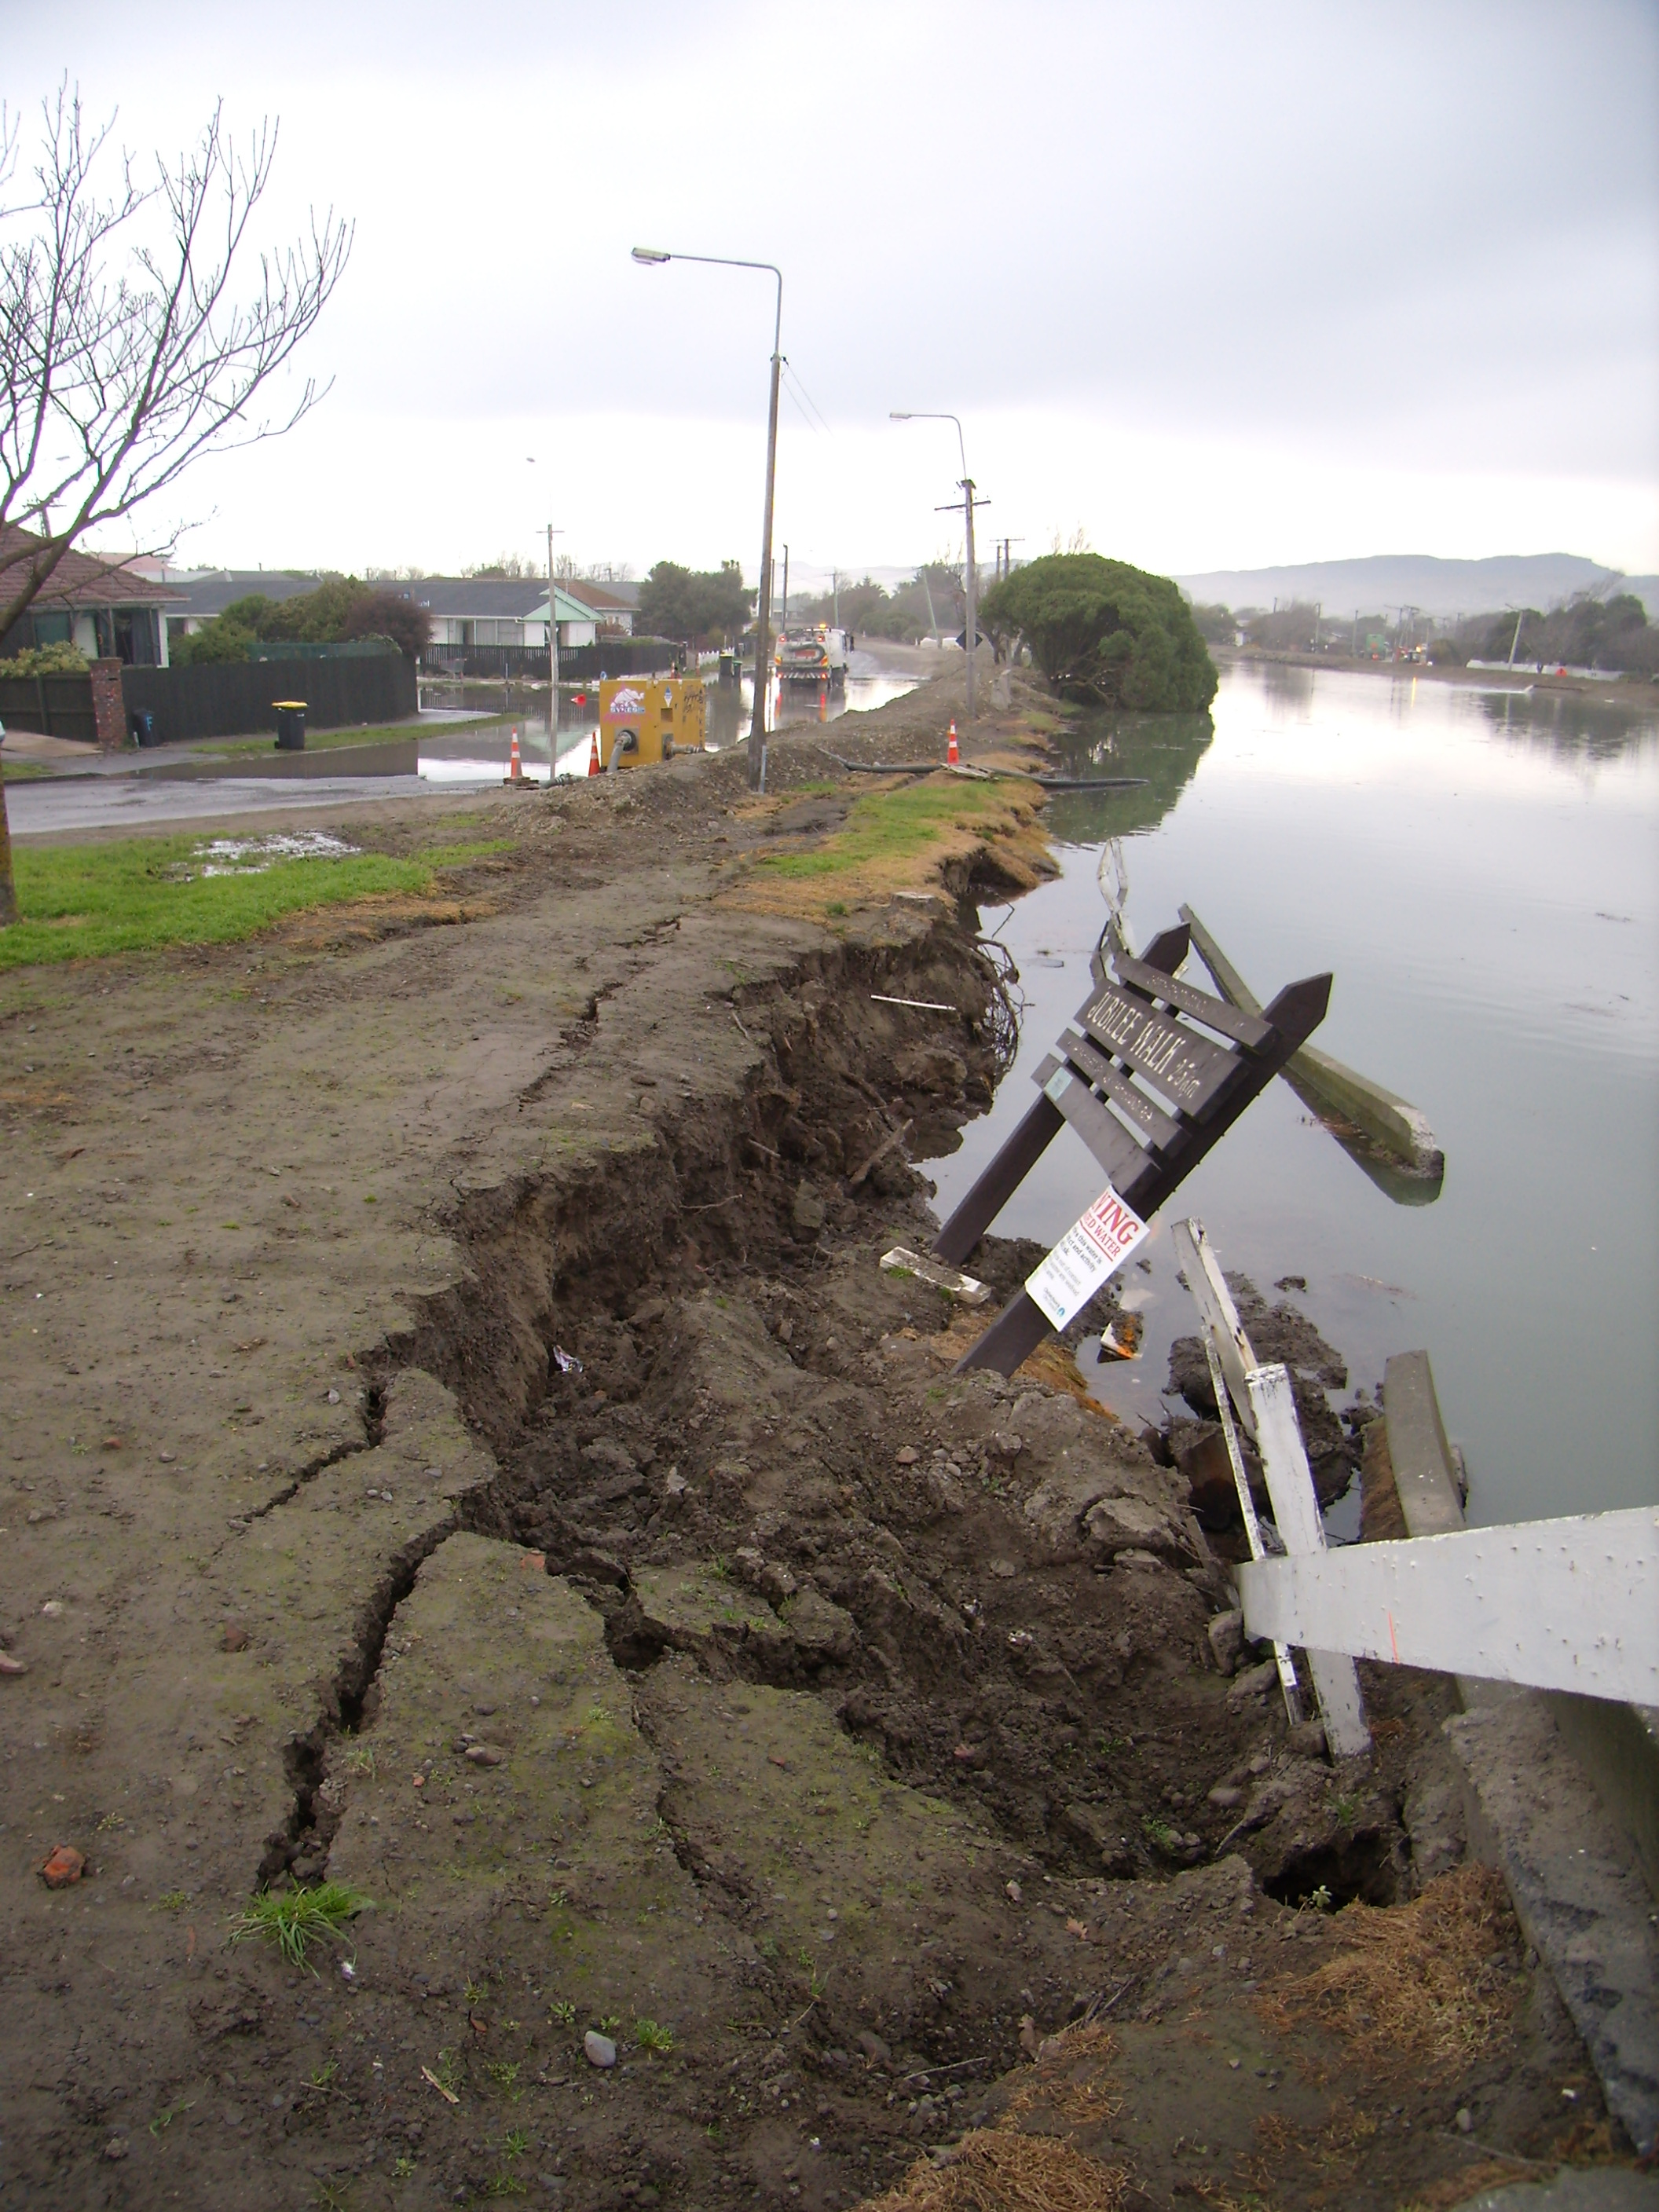 Flood 6 July 2011 Avon River NB 06 by Gina Hubert is licensed under a Creative Commons Attribution-Noncommercial-Share Alike 3.0 New Zealand License